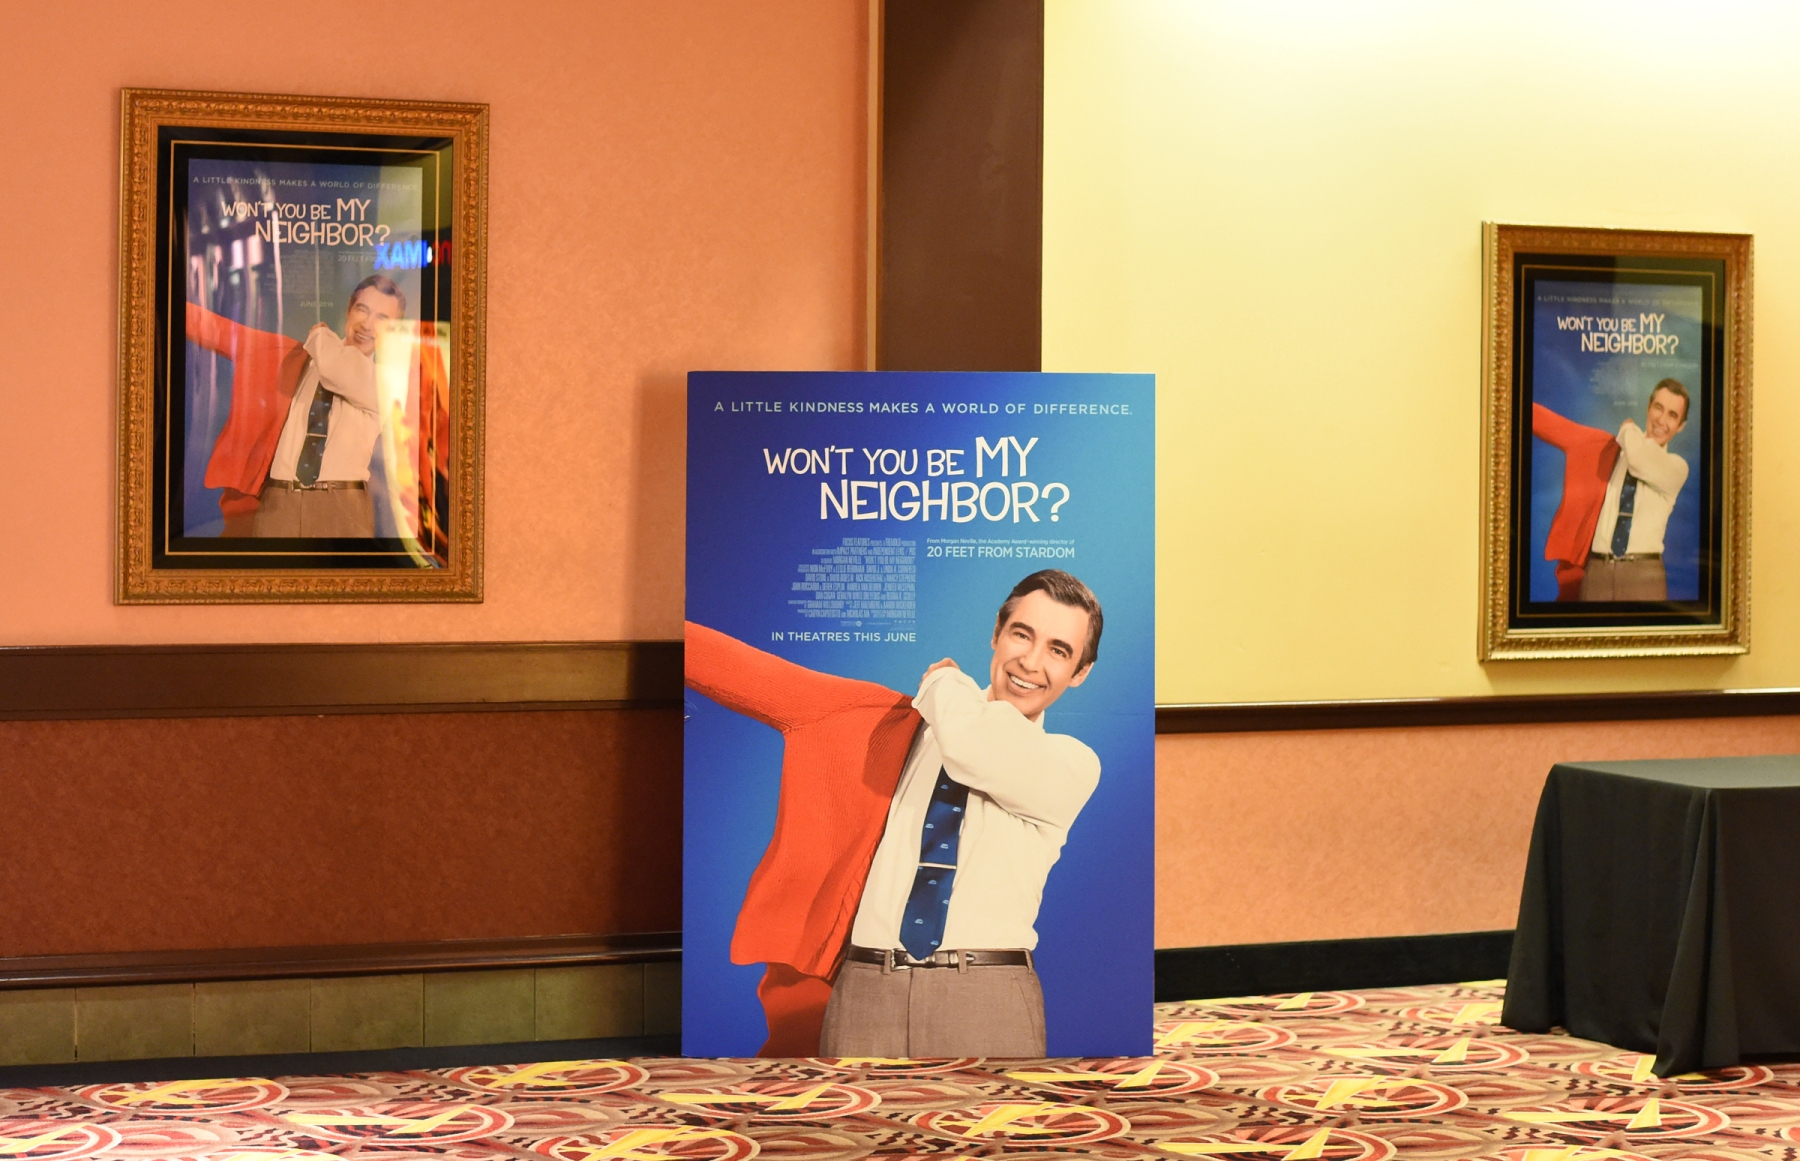 """A general view of atmospher during a special screening of """"Won't You Be My Neighbor?"""" on May 23, 2018 in West Homestead, Pennsylvania.  (Photo by Jason Merritt/Getty Images for Focus Features)"""